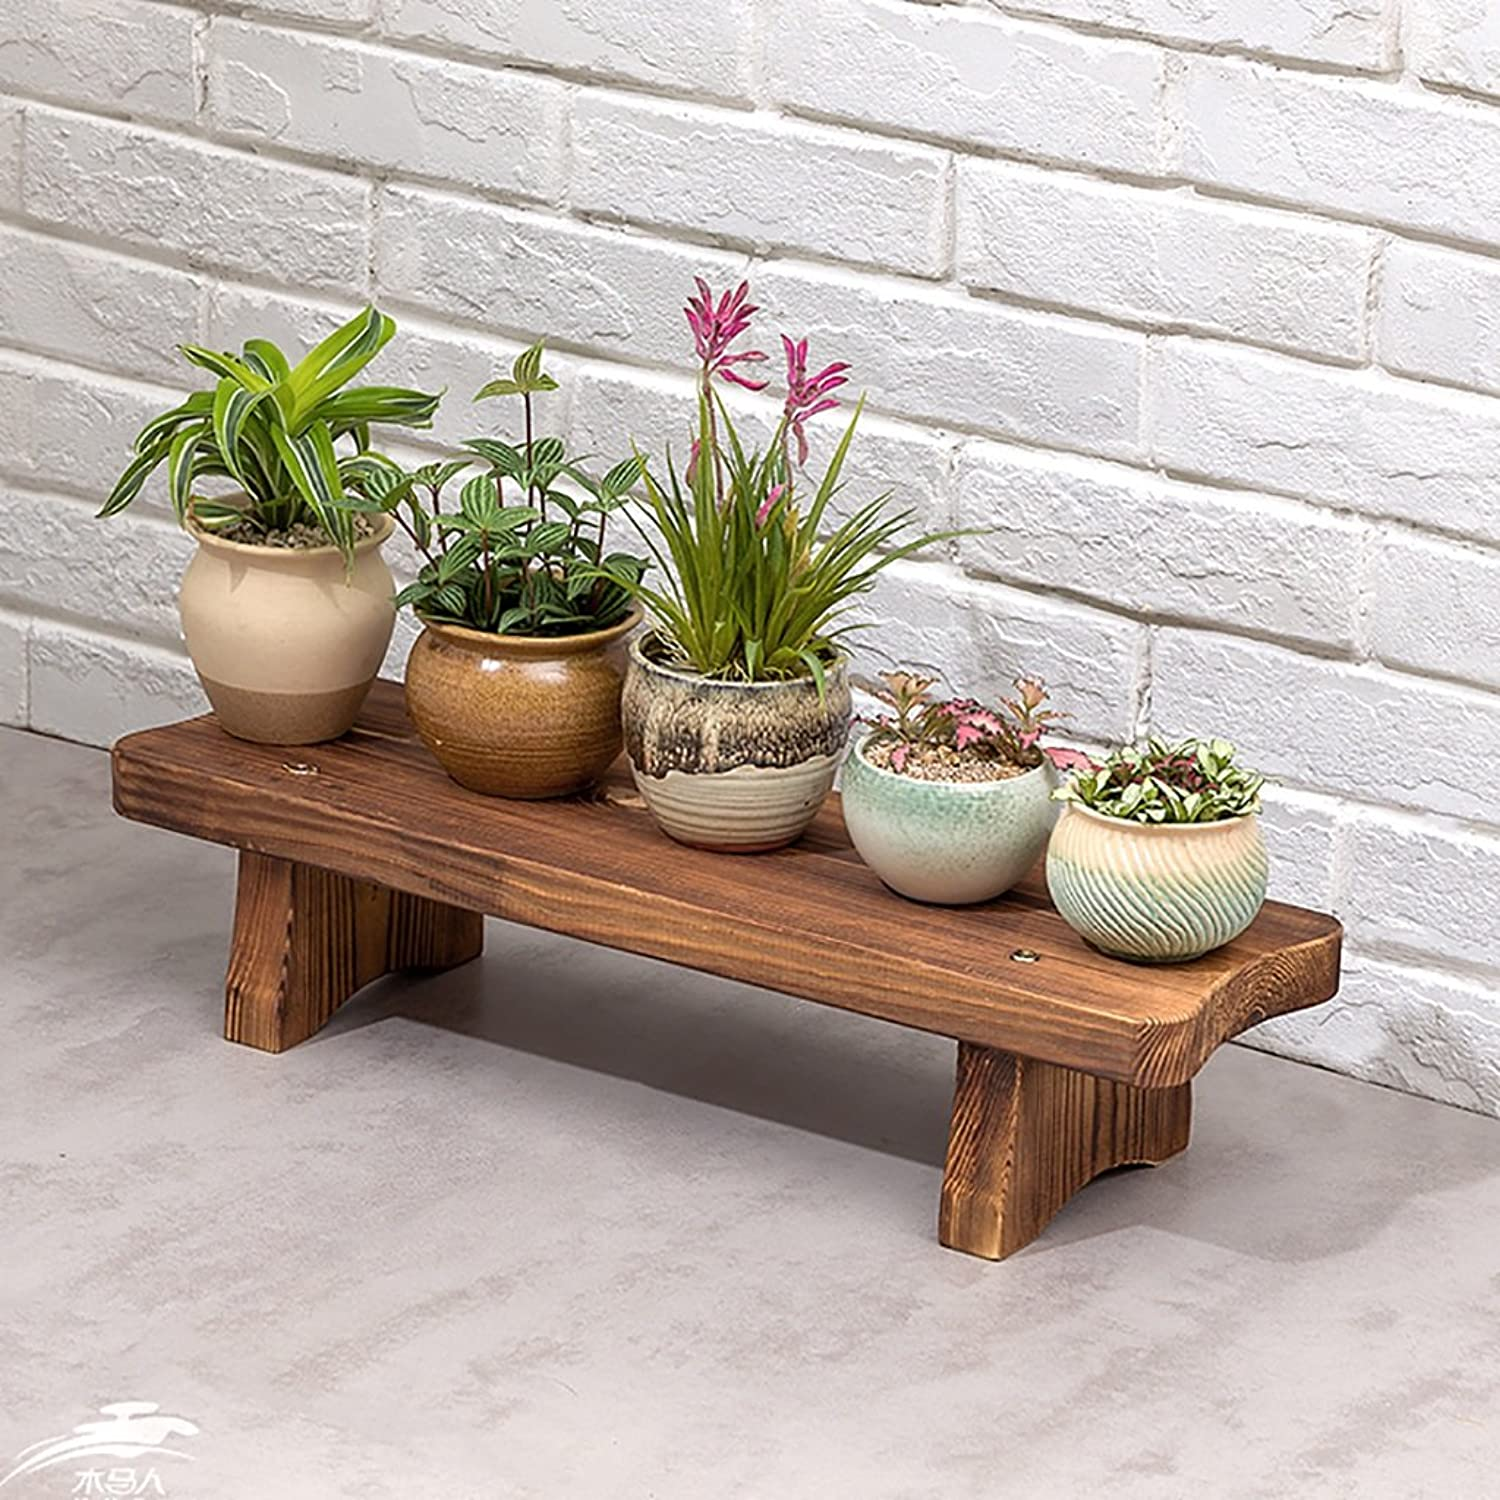 Standing Flower Stand Flower Stand Solid Wood Landing Flower Stand Balcony Living Room Flower Pot Rack Shelf Decorative Frame (color   S, Size   60cm)